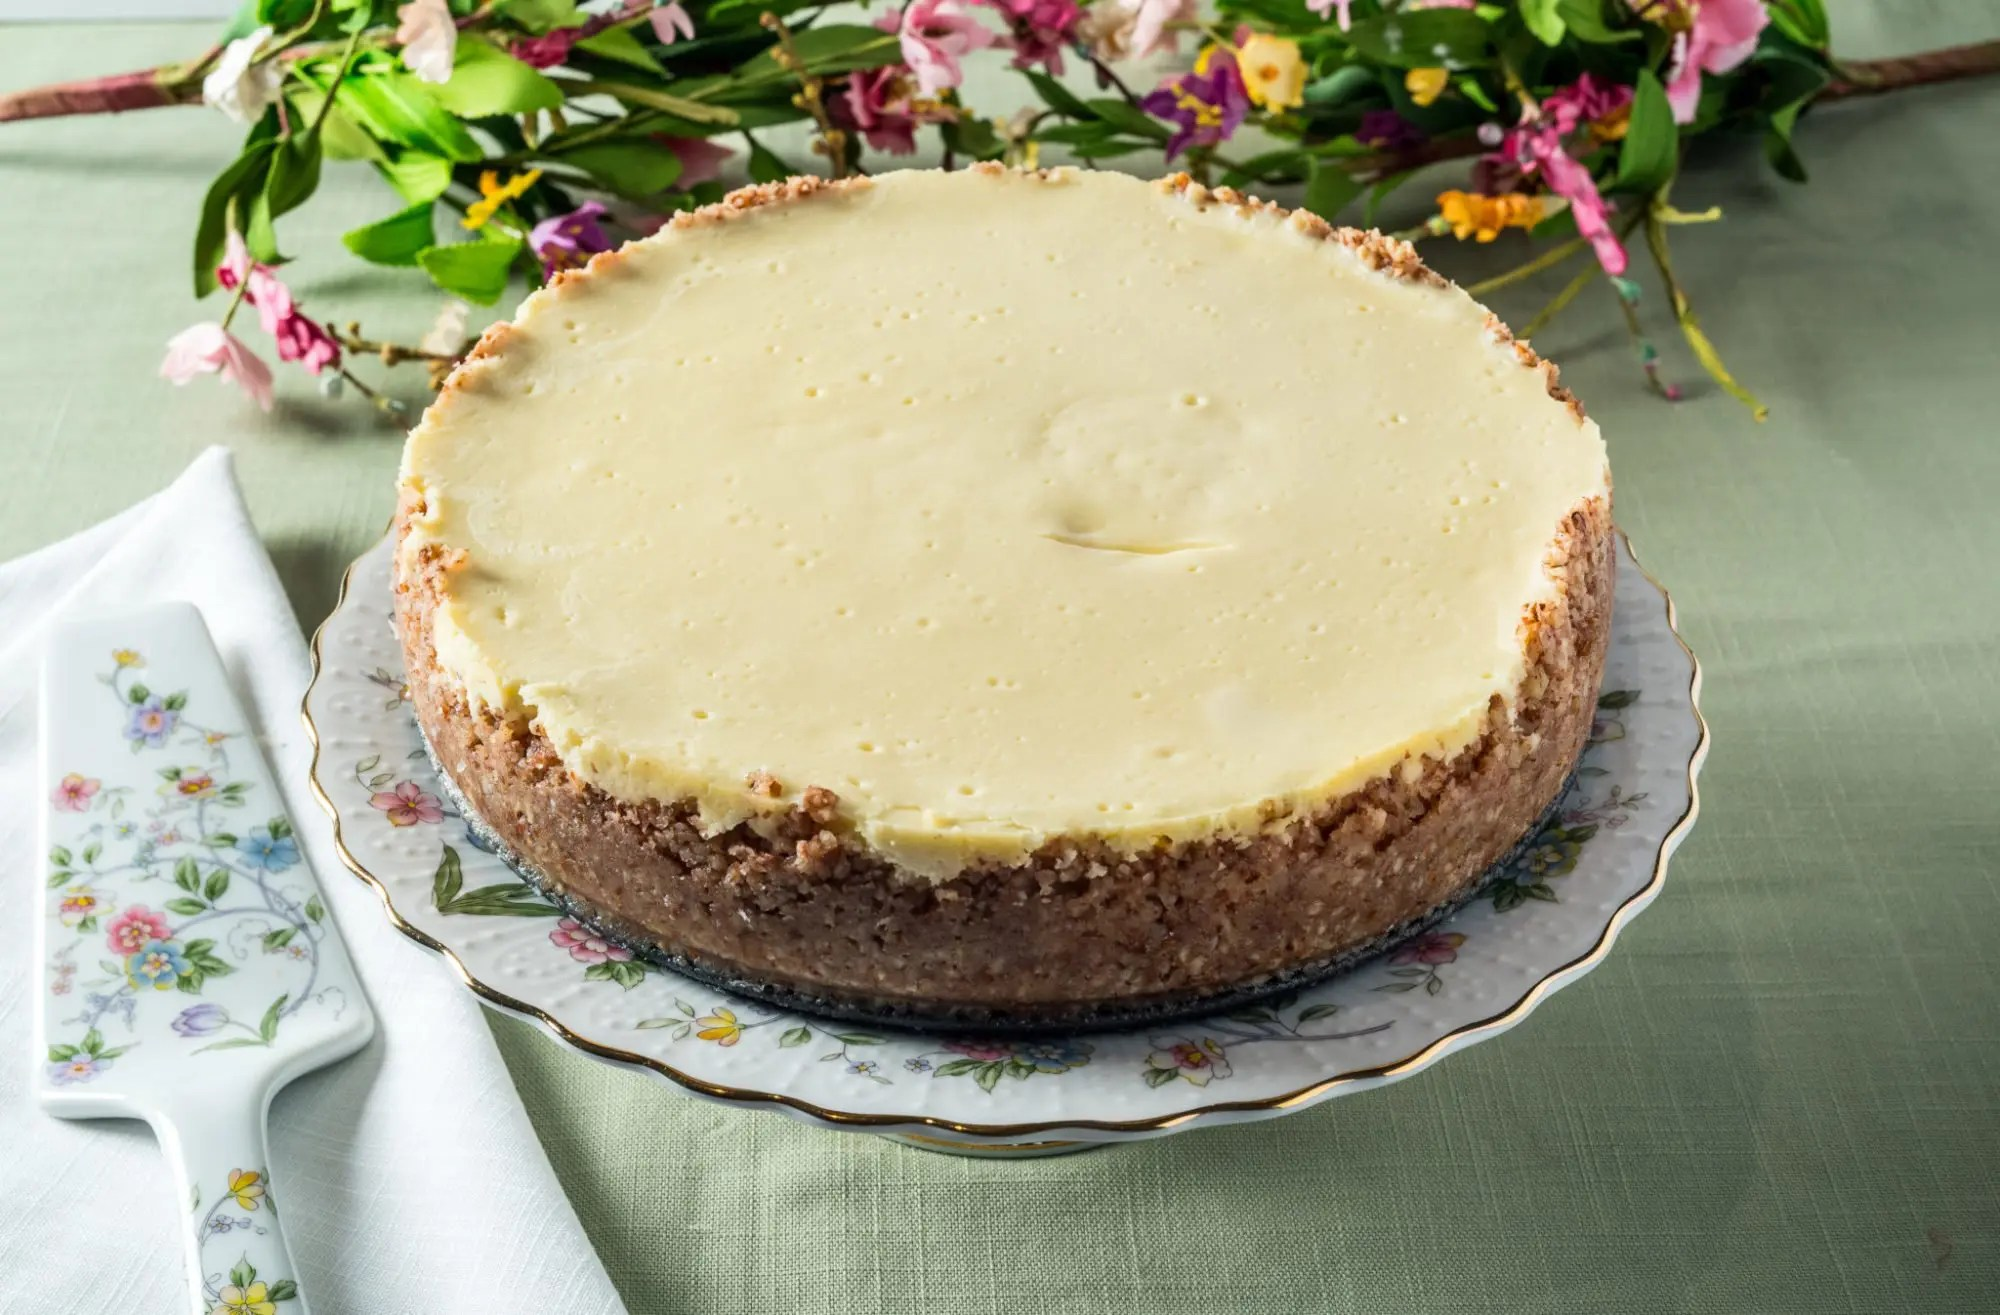 Protein Kuchen Low Carb Low Carb Cheesecake The World S Best Tasty Low Carb